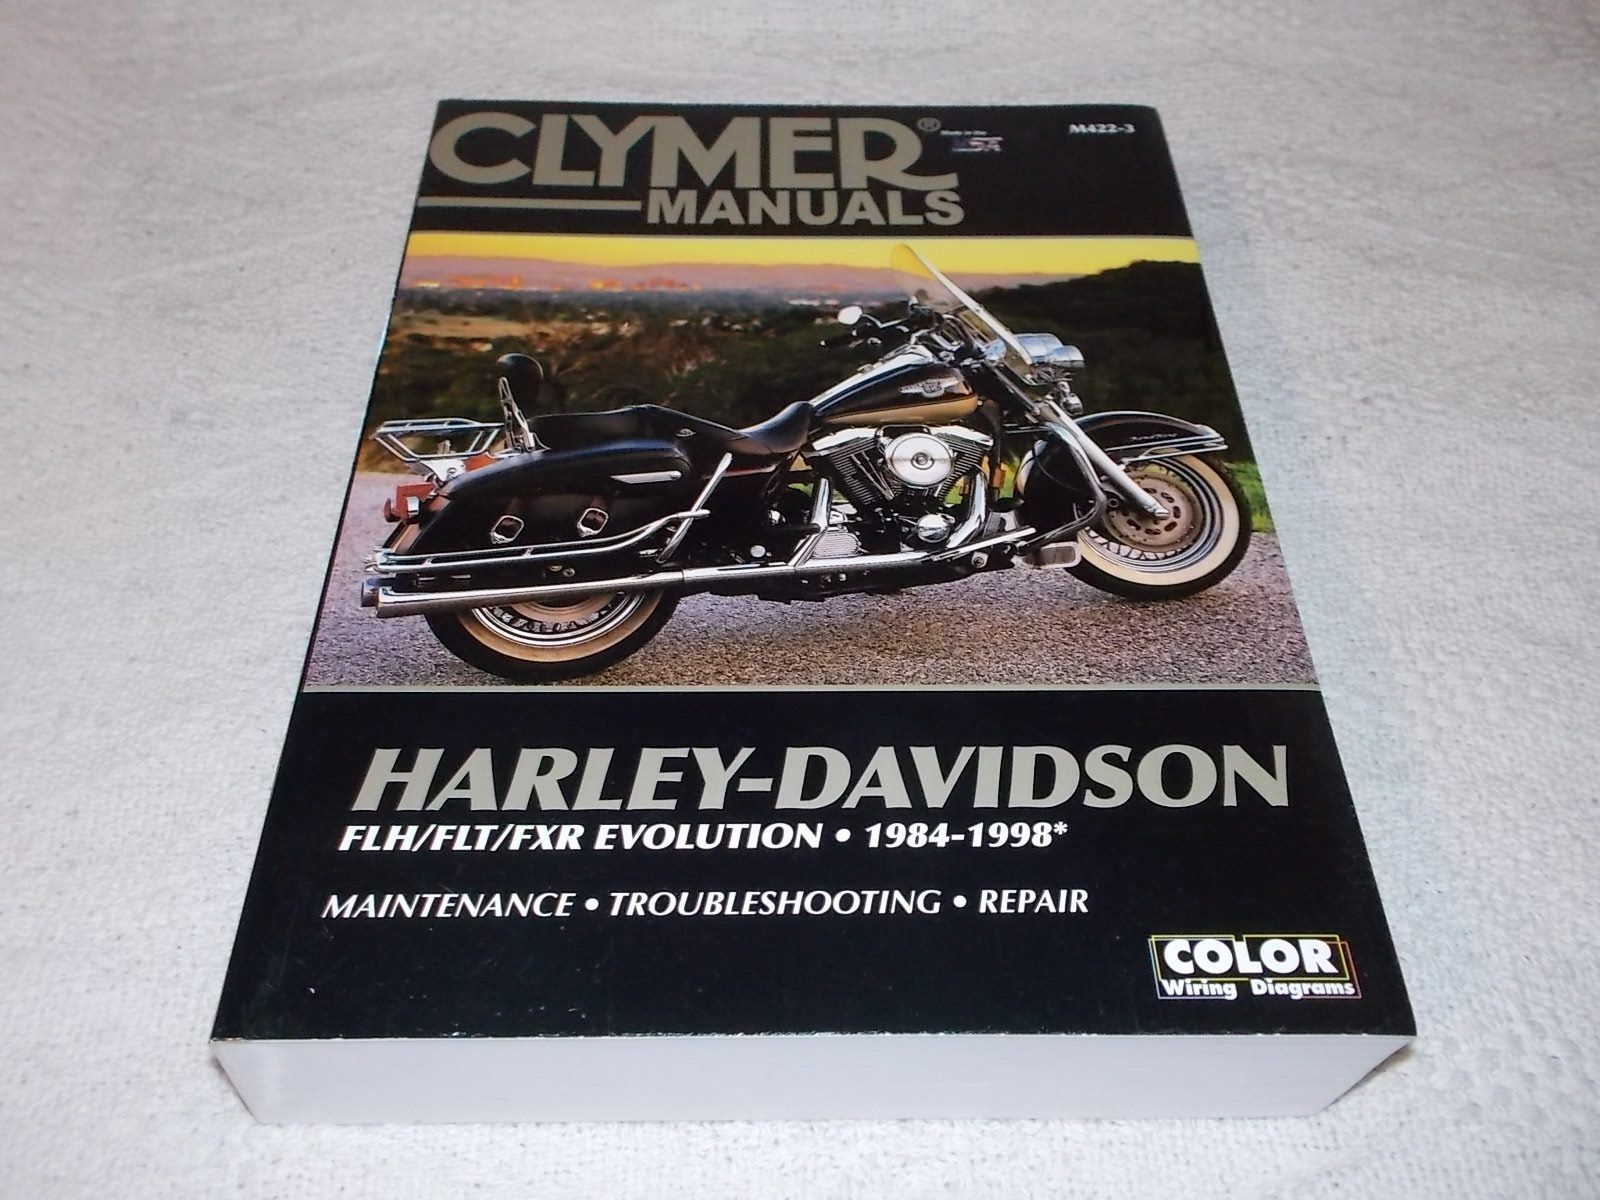 Harley Davidson FLH/FLT/FXR Evo 84-98 Clymer Big Manual ... on